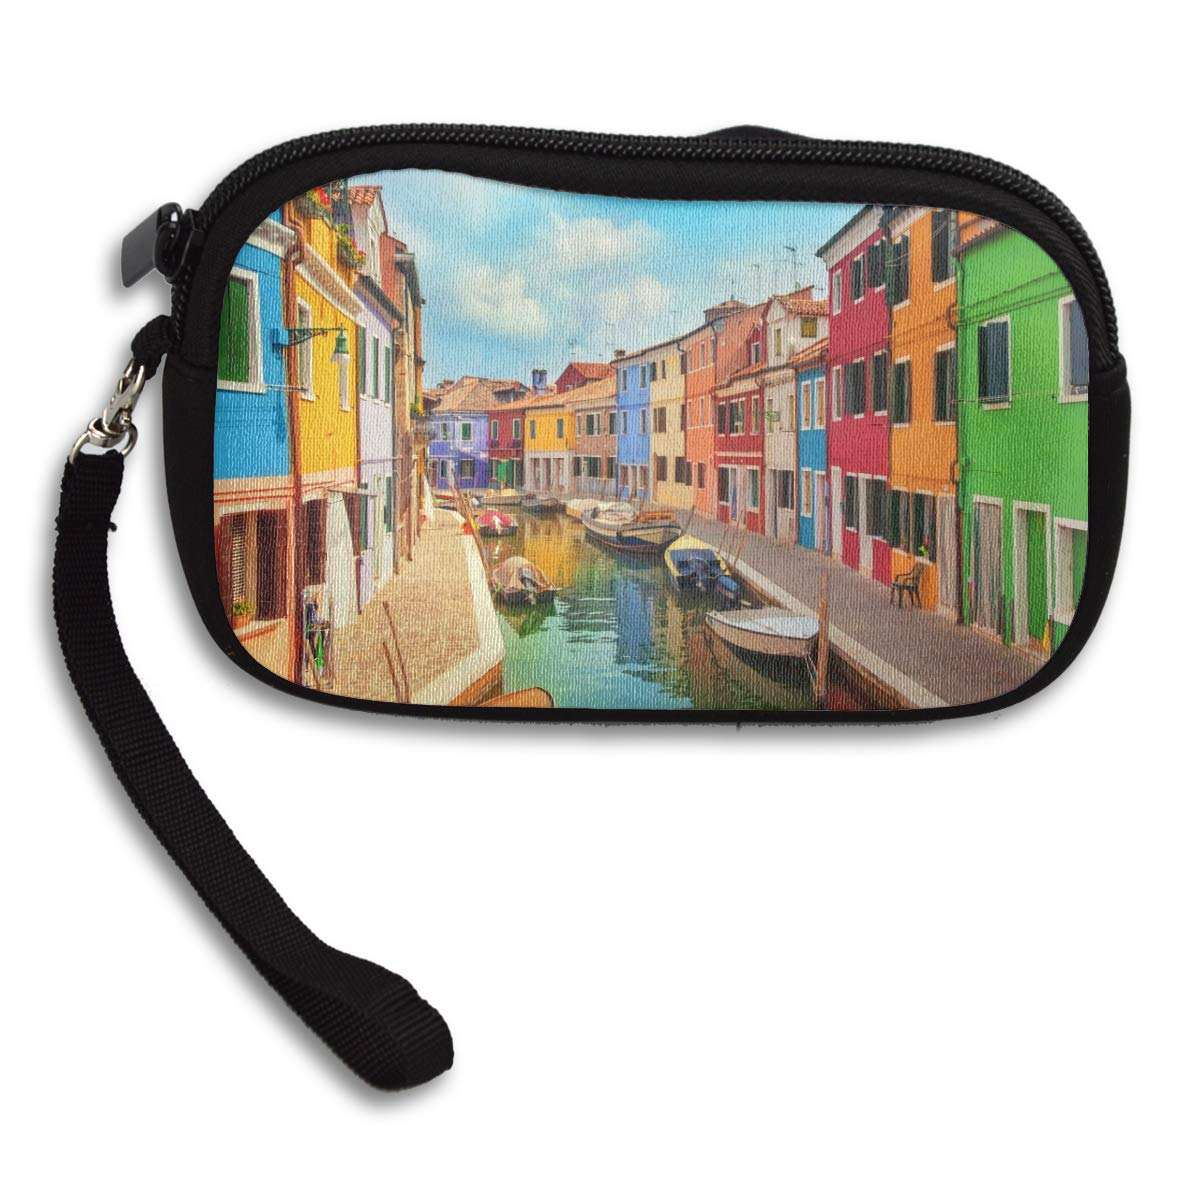 Coin Purse Colorful Buildings And Water Canal With Boats Coin Pouch With Zipper,Make Up Bag,Wallet Bag Change Pouch Key Holder